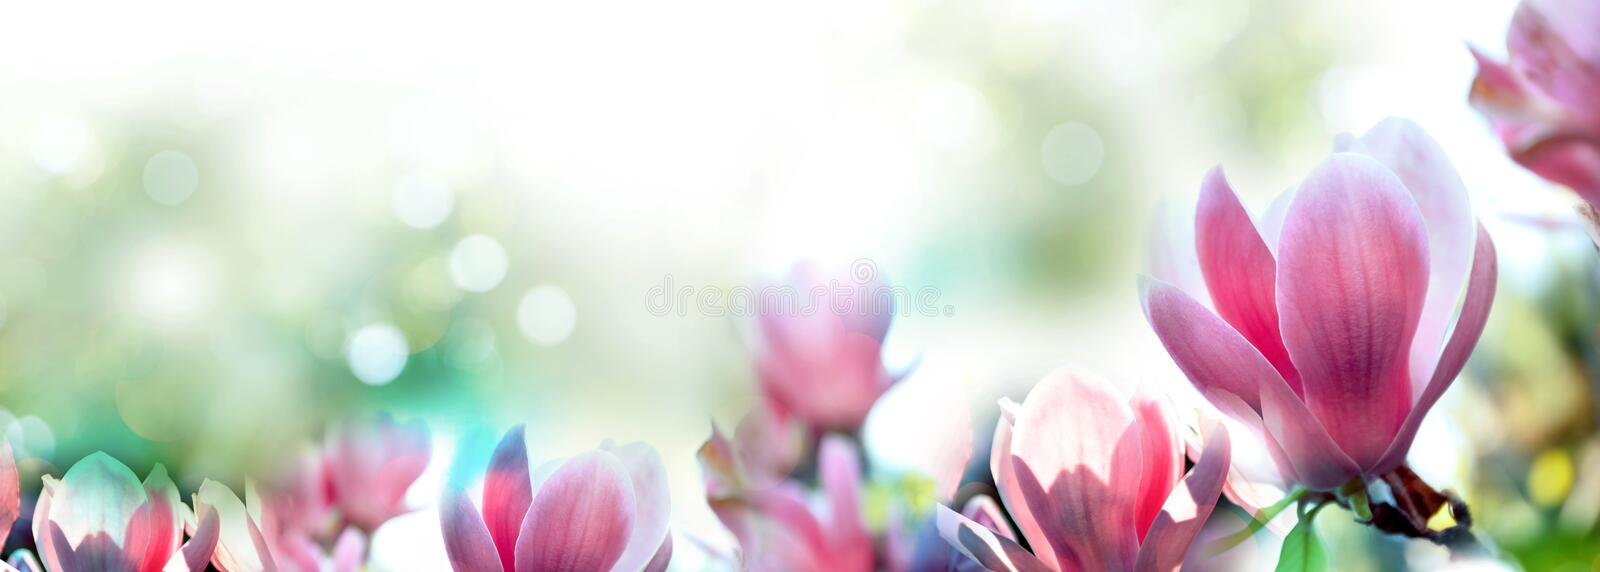 Beautiful magnolia flowers. Amazing spring blossom. Beautiful magnolia flowers, closeup. Amazing spring blossom royalty free stock images